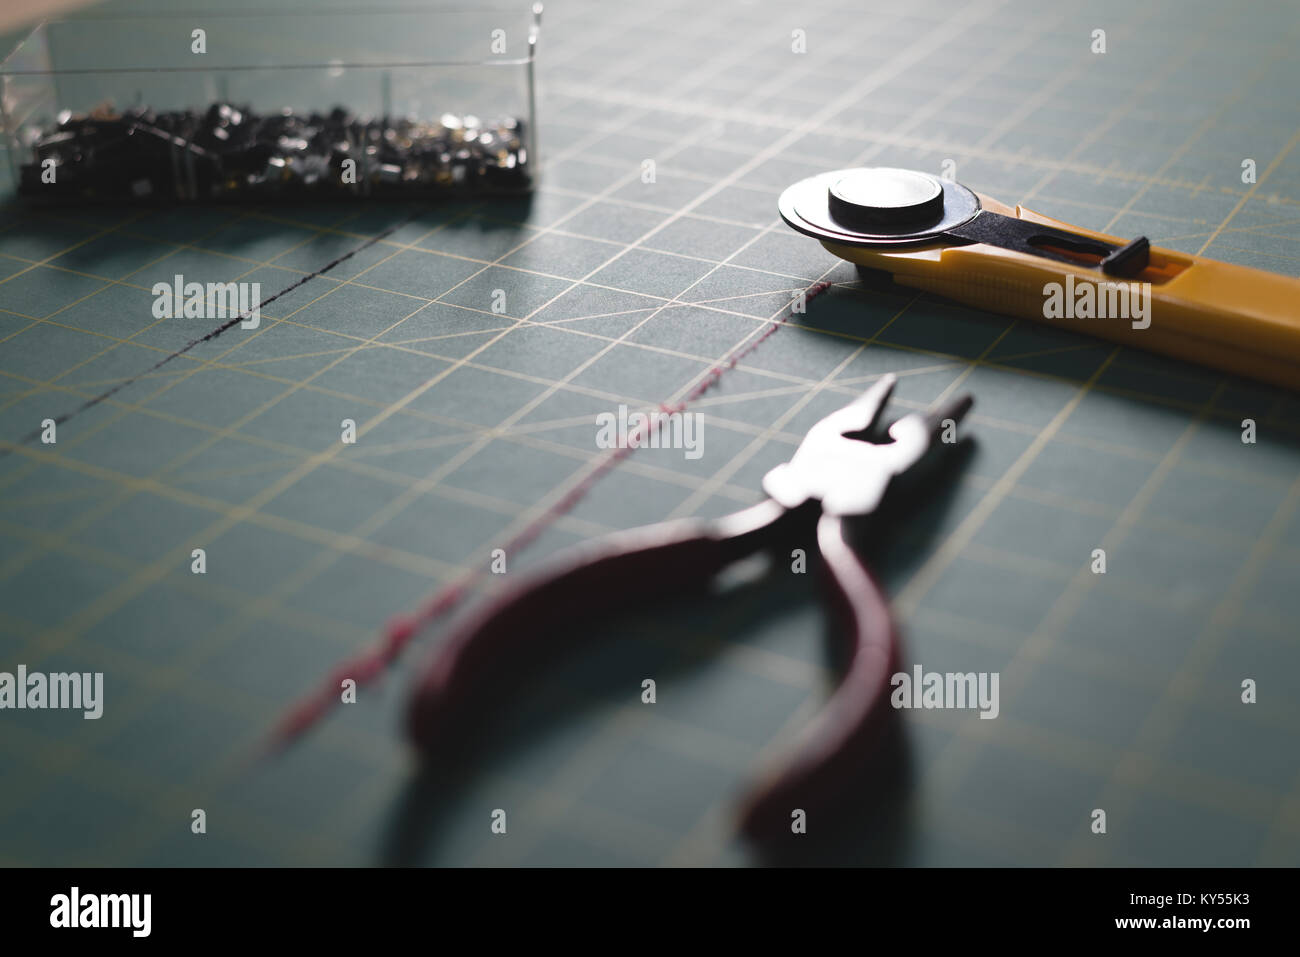 Pliers and blade on table - Stock Image